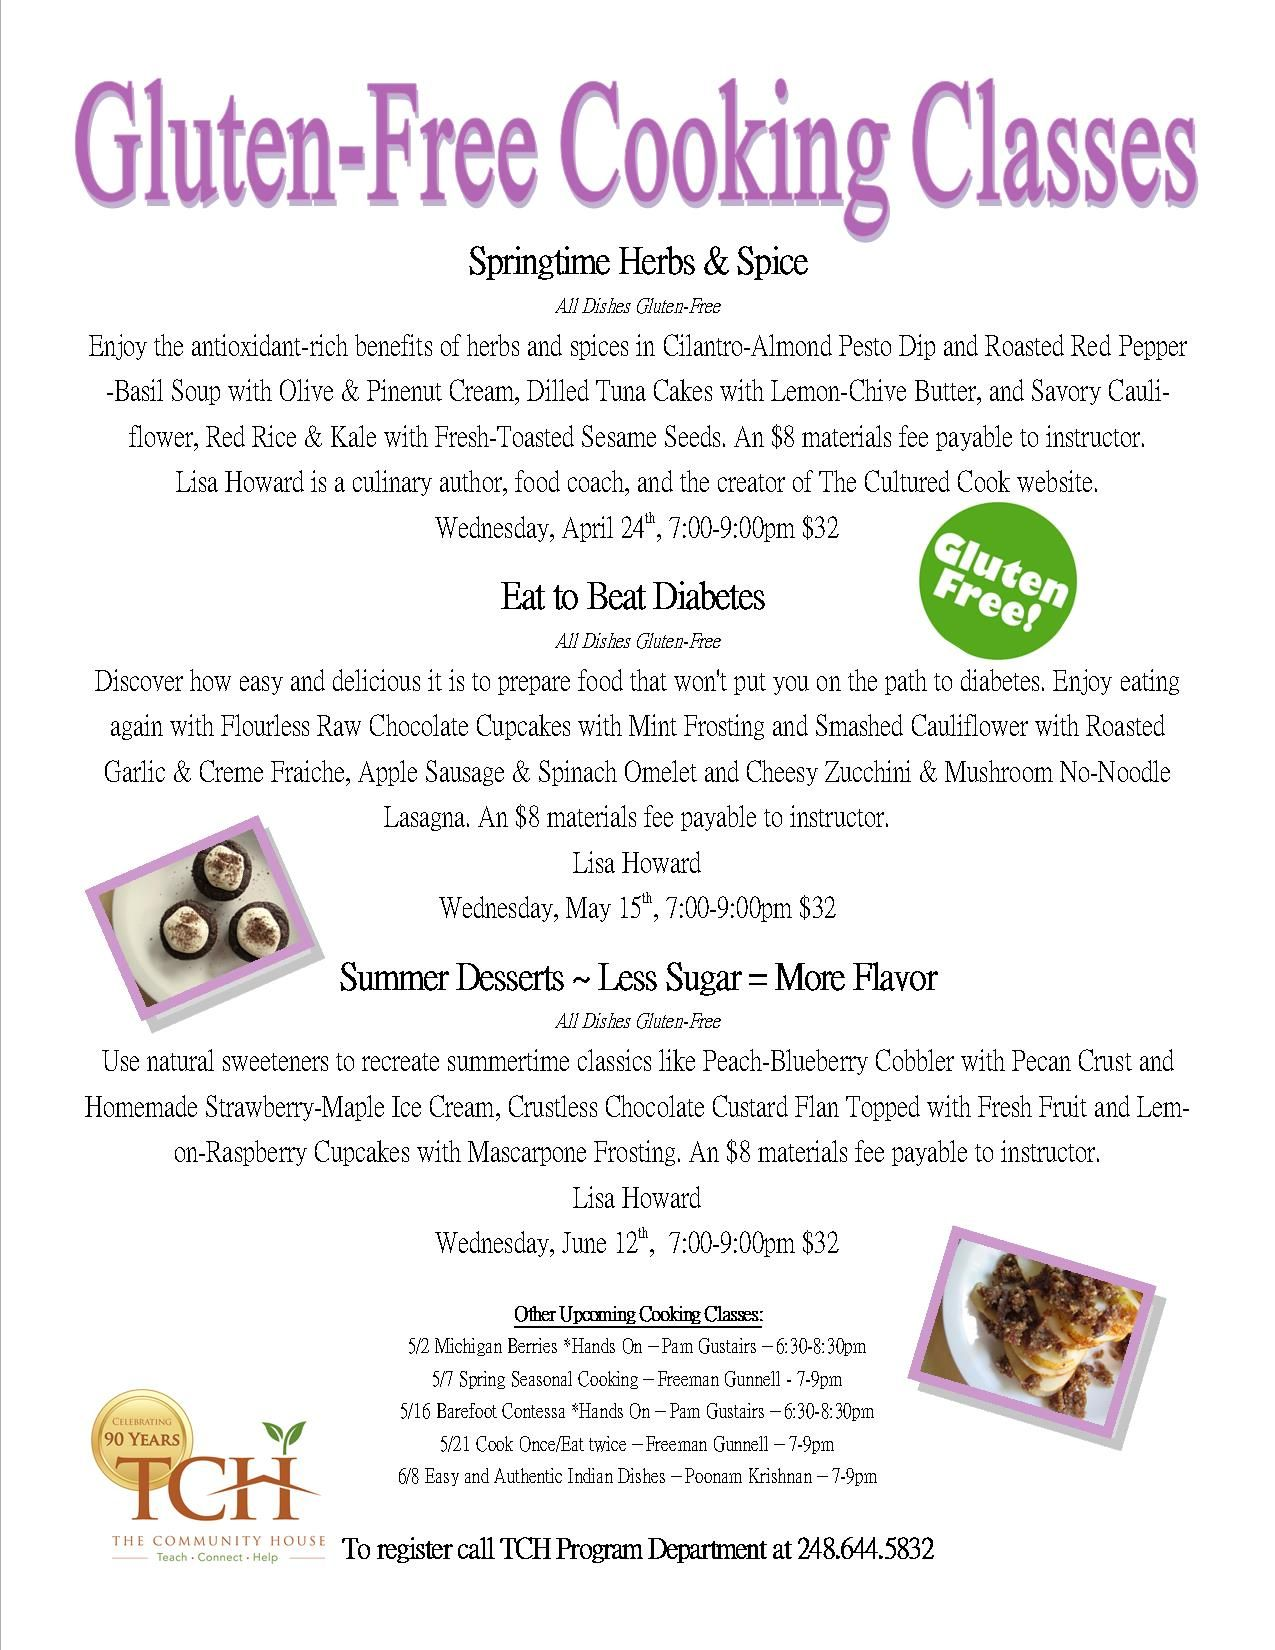 Gluten free cooking classes this spring the community